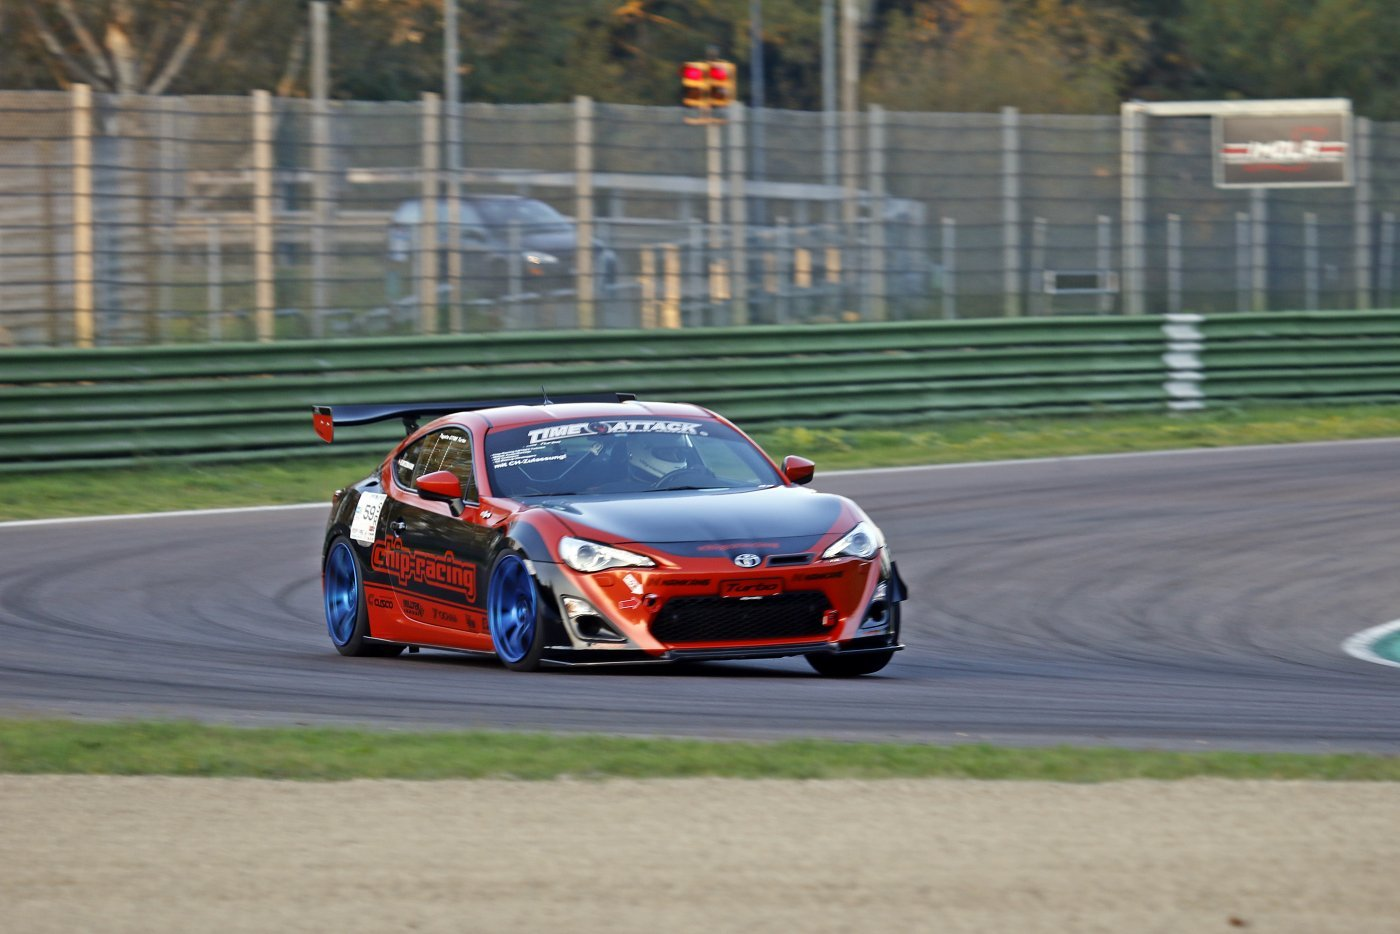 TAI 2019 Imola  CR GT86 Turbo